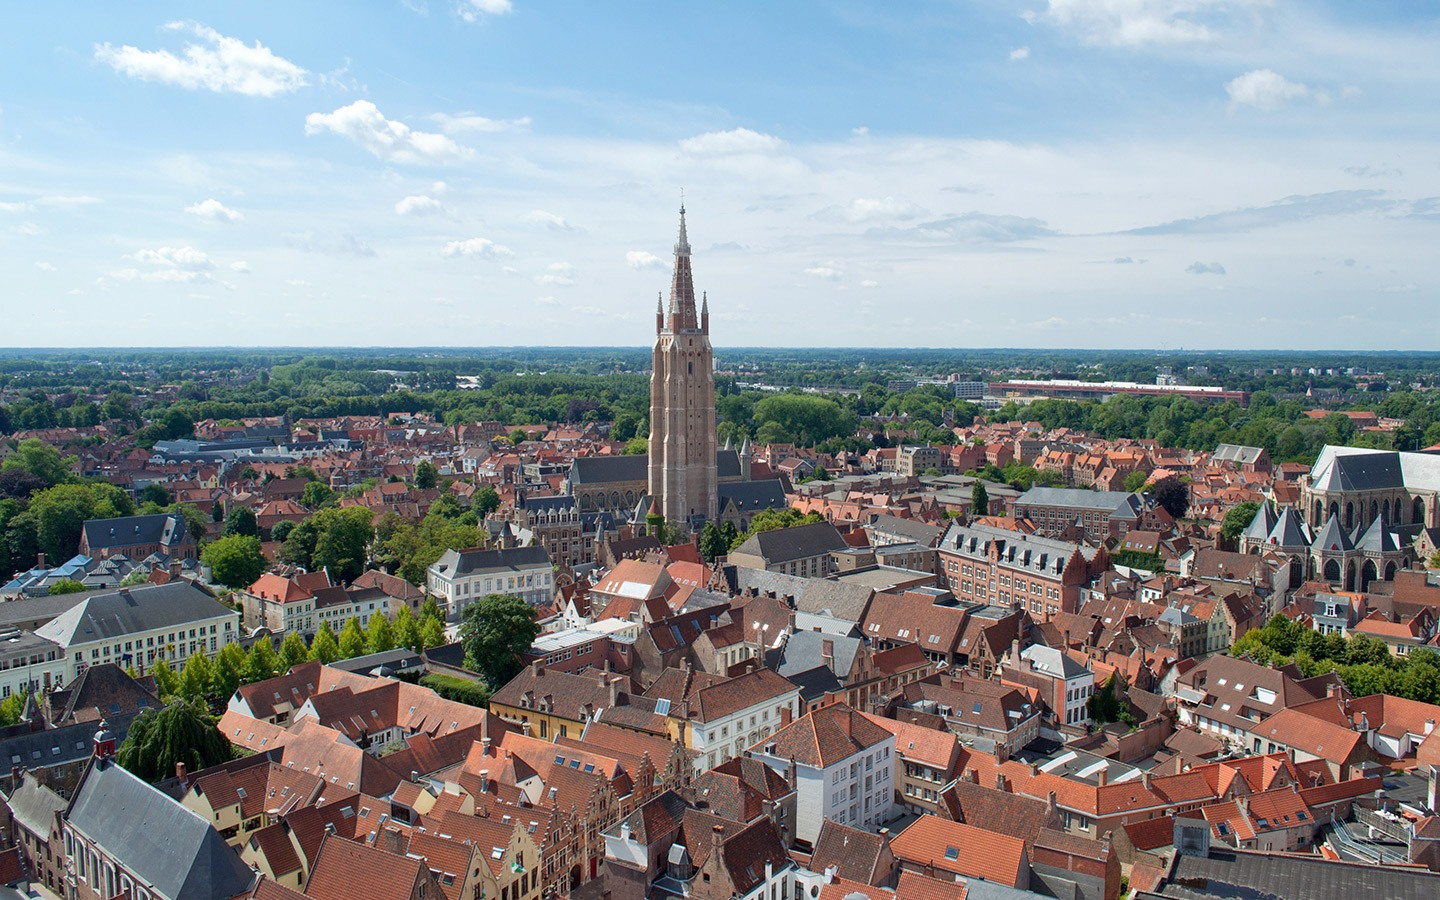 Views from the top of th Belfort tower